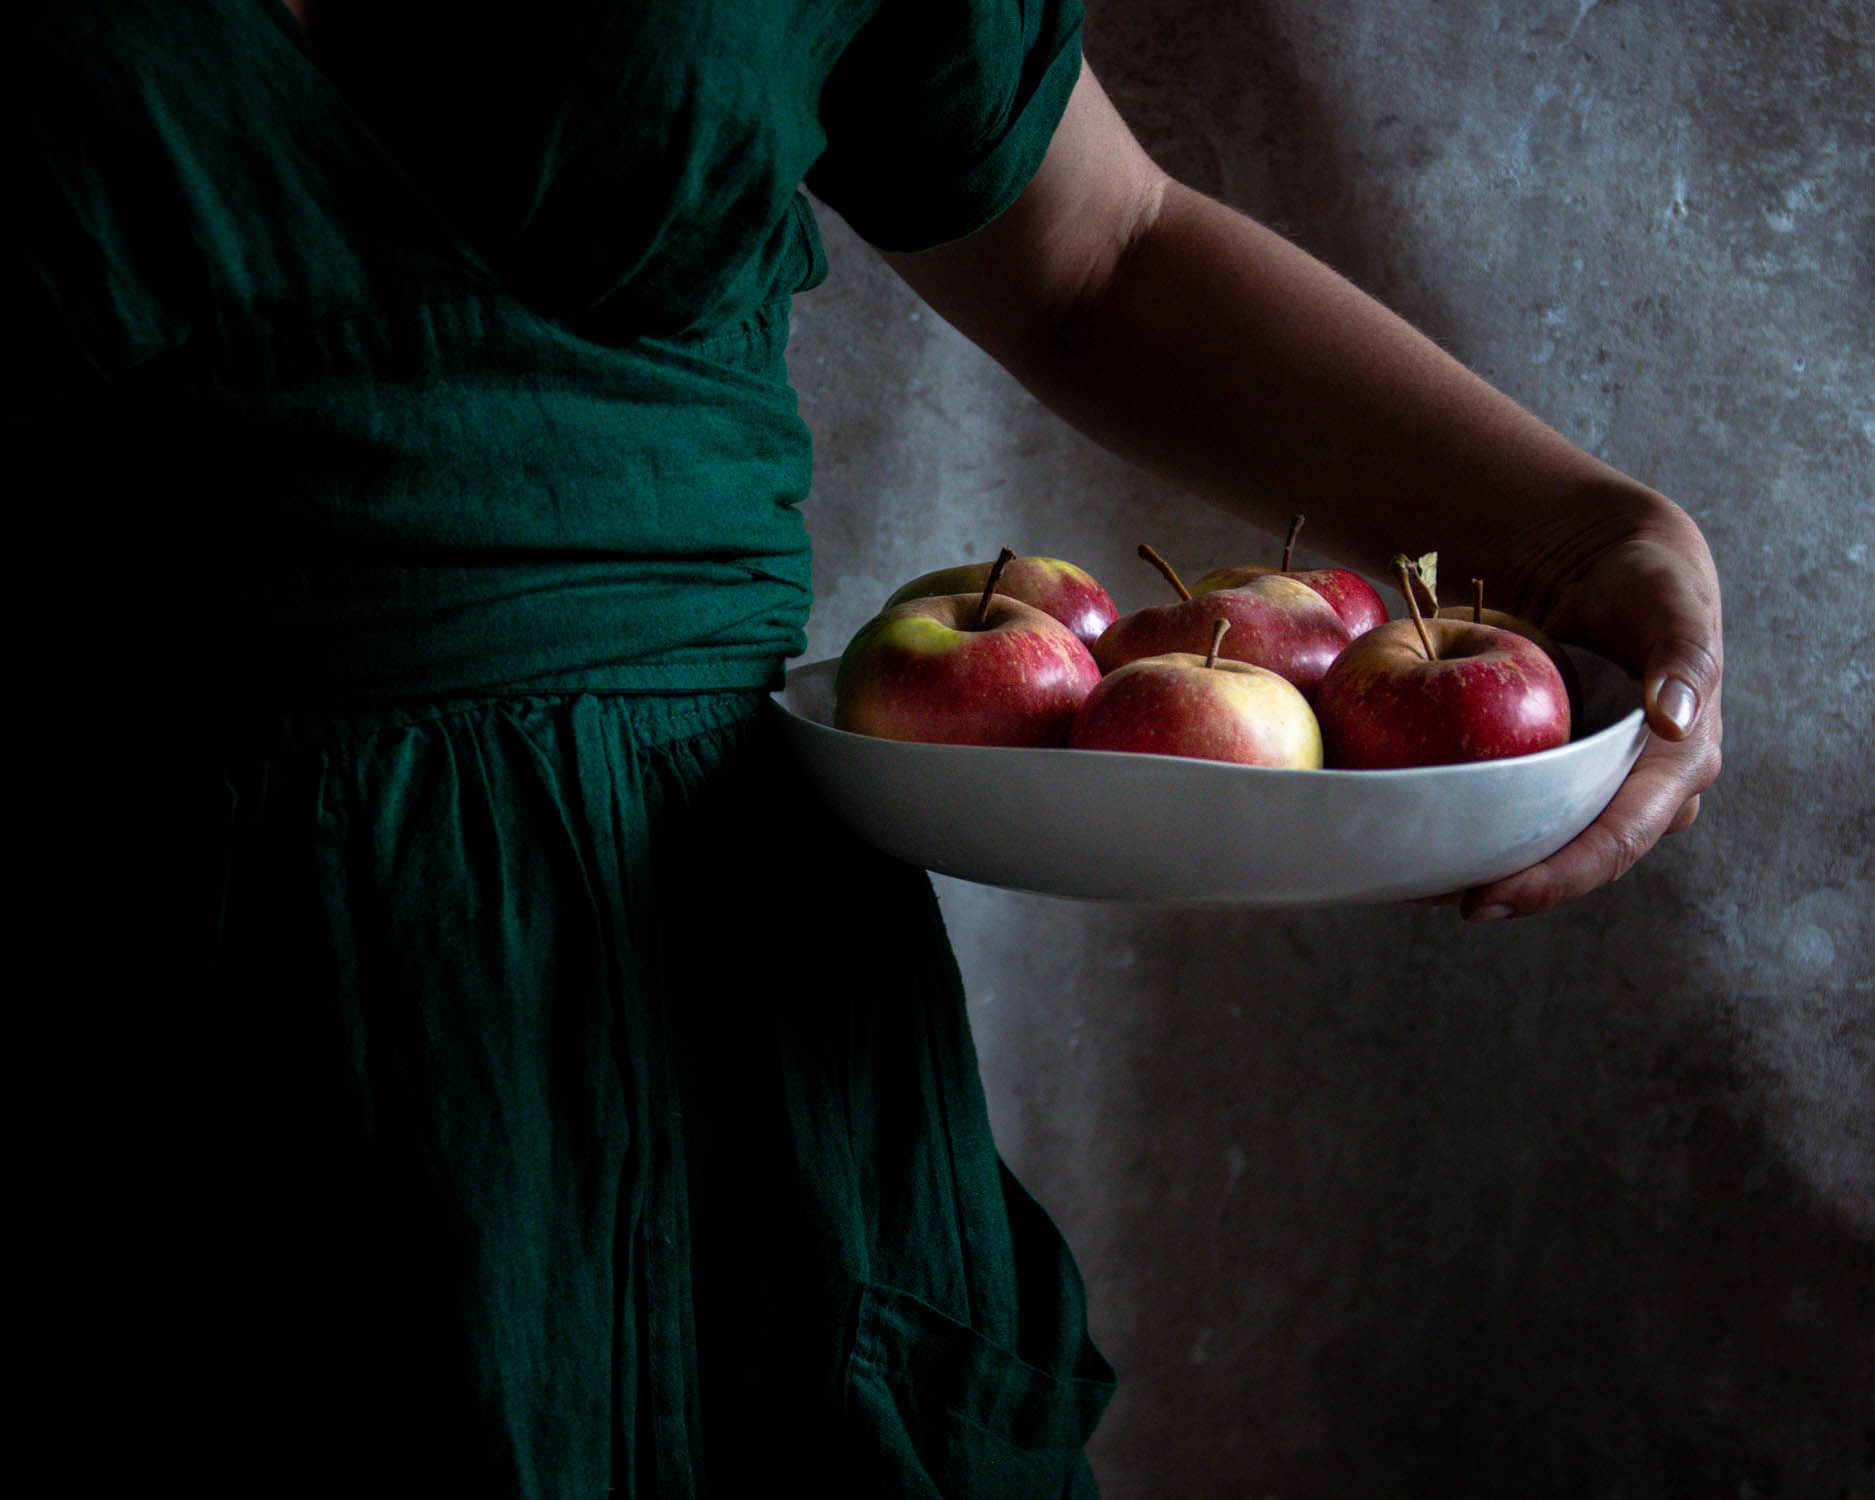 Holding a bowl of freshly picked apples